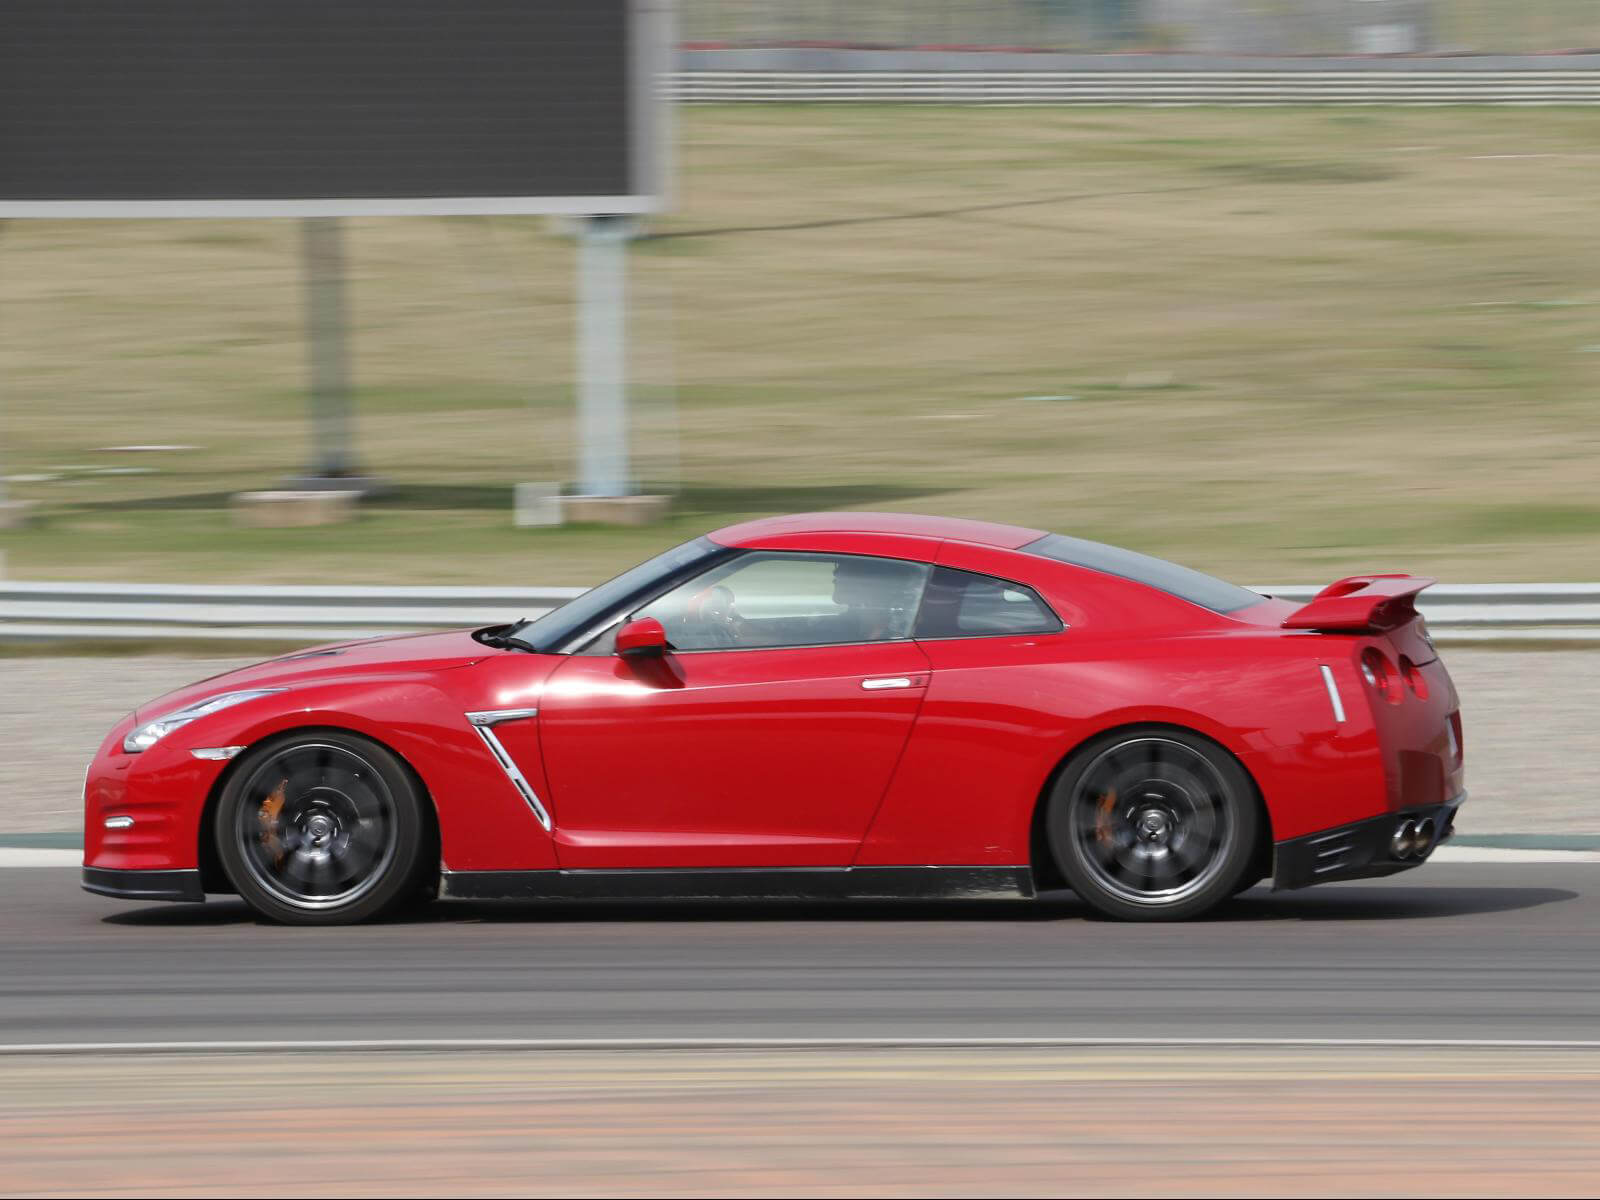 Nissan Gtr Wallpapers Free Download